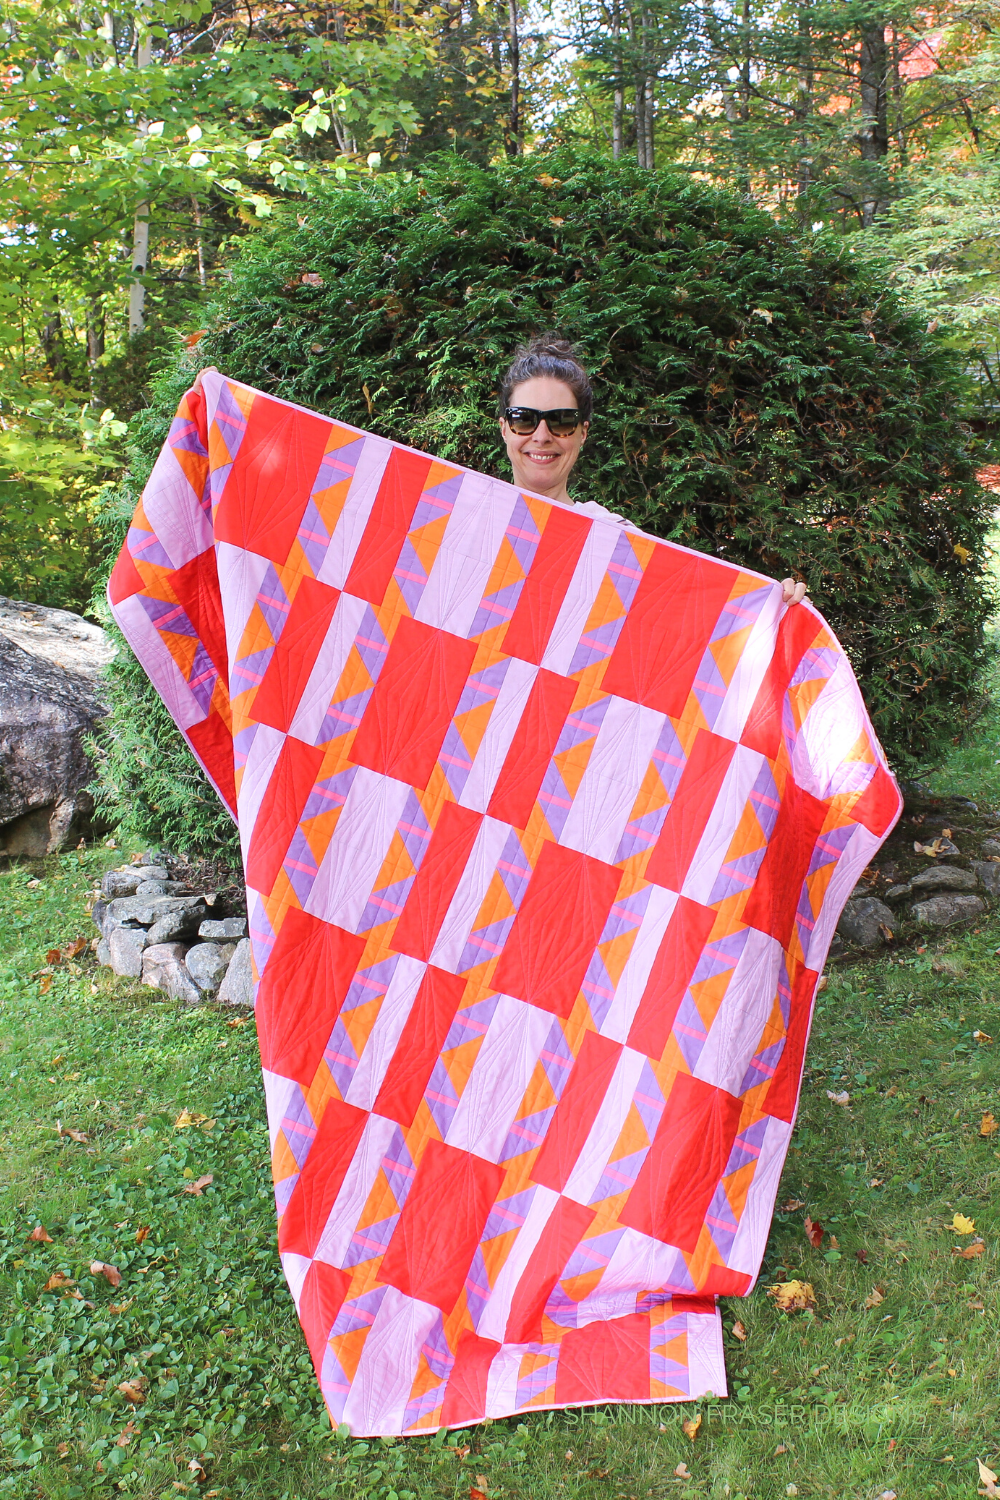 Me holding the Shattered Star quilt in the fall wild - features Ruby & Bee solids from Windham fabrics and uses the beginner friendly  Shattered Star quilt pattern by Shannon Fraser Designs #modernquilter